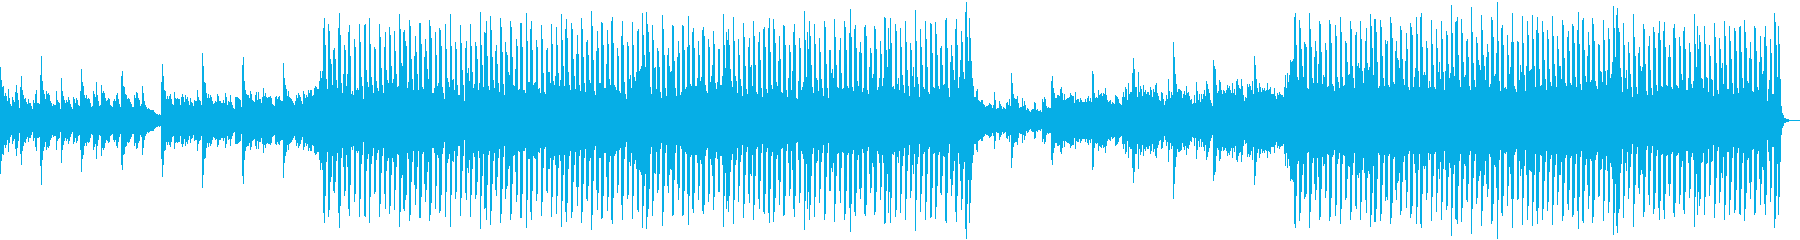 Refreshing acoustic guitar dance's reproduced waveform